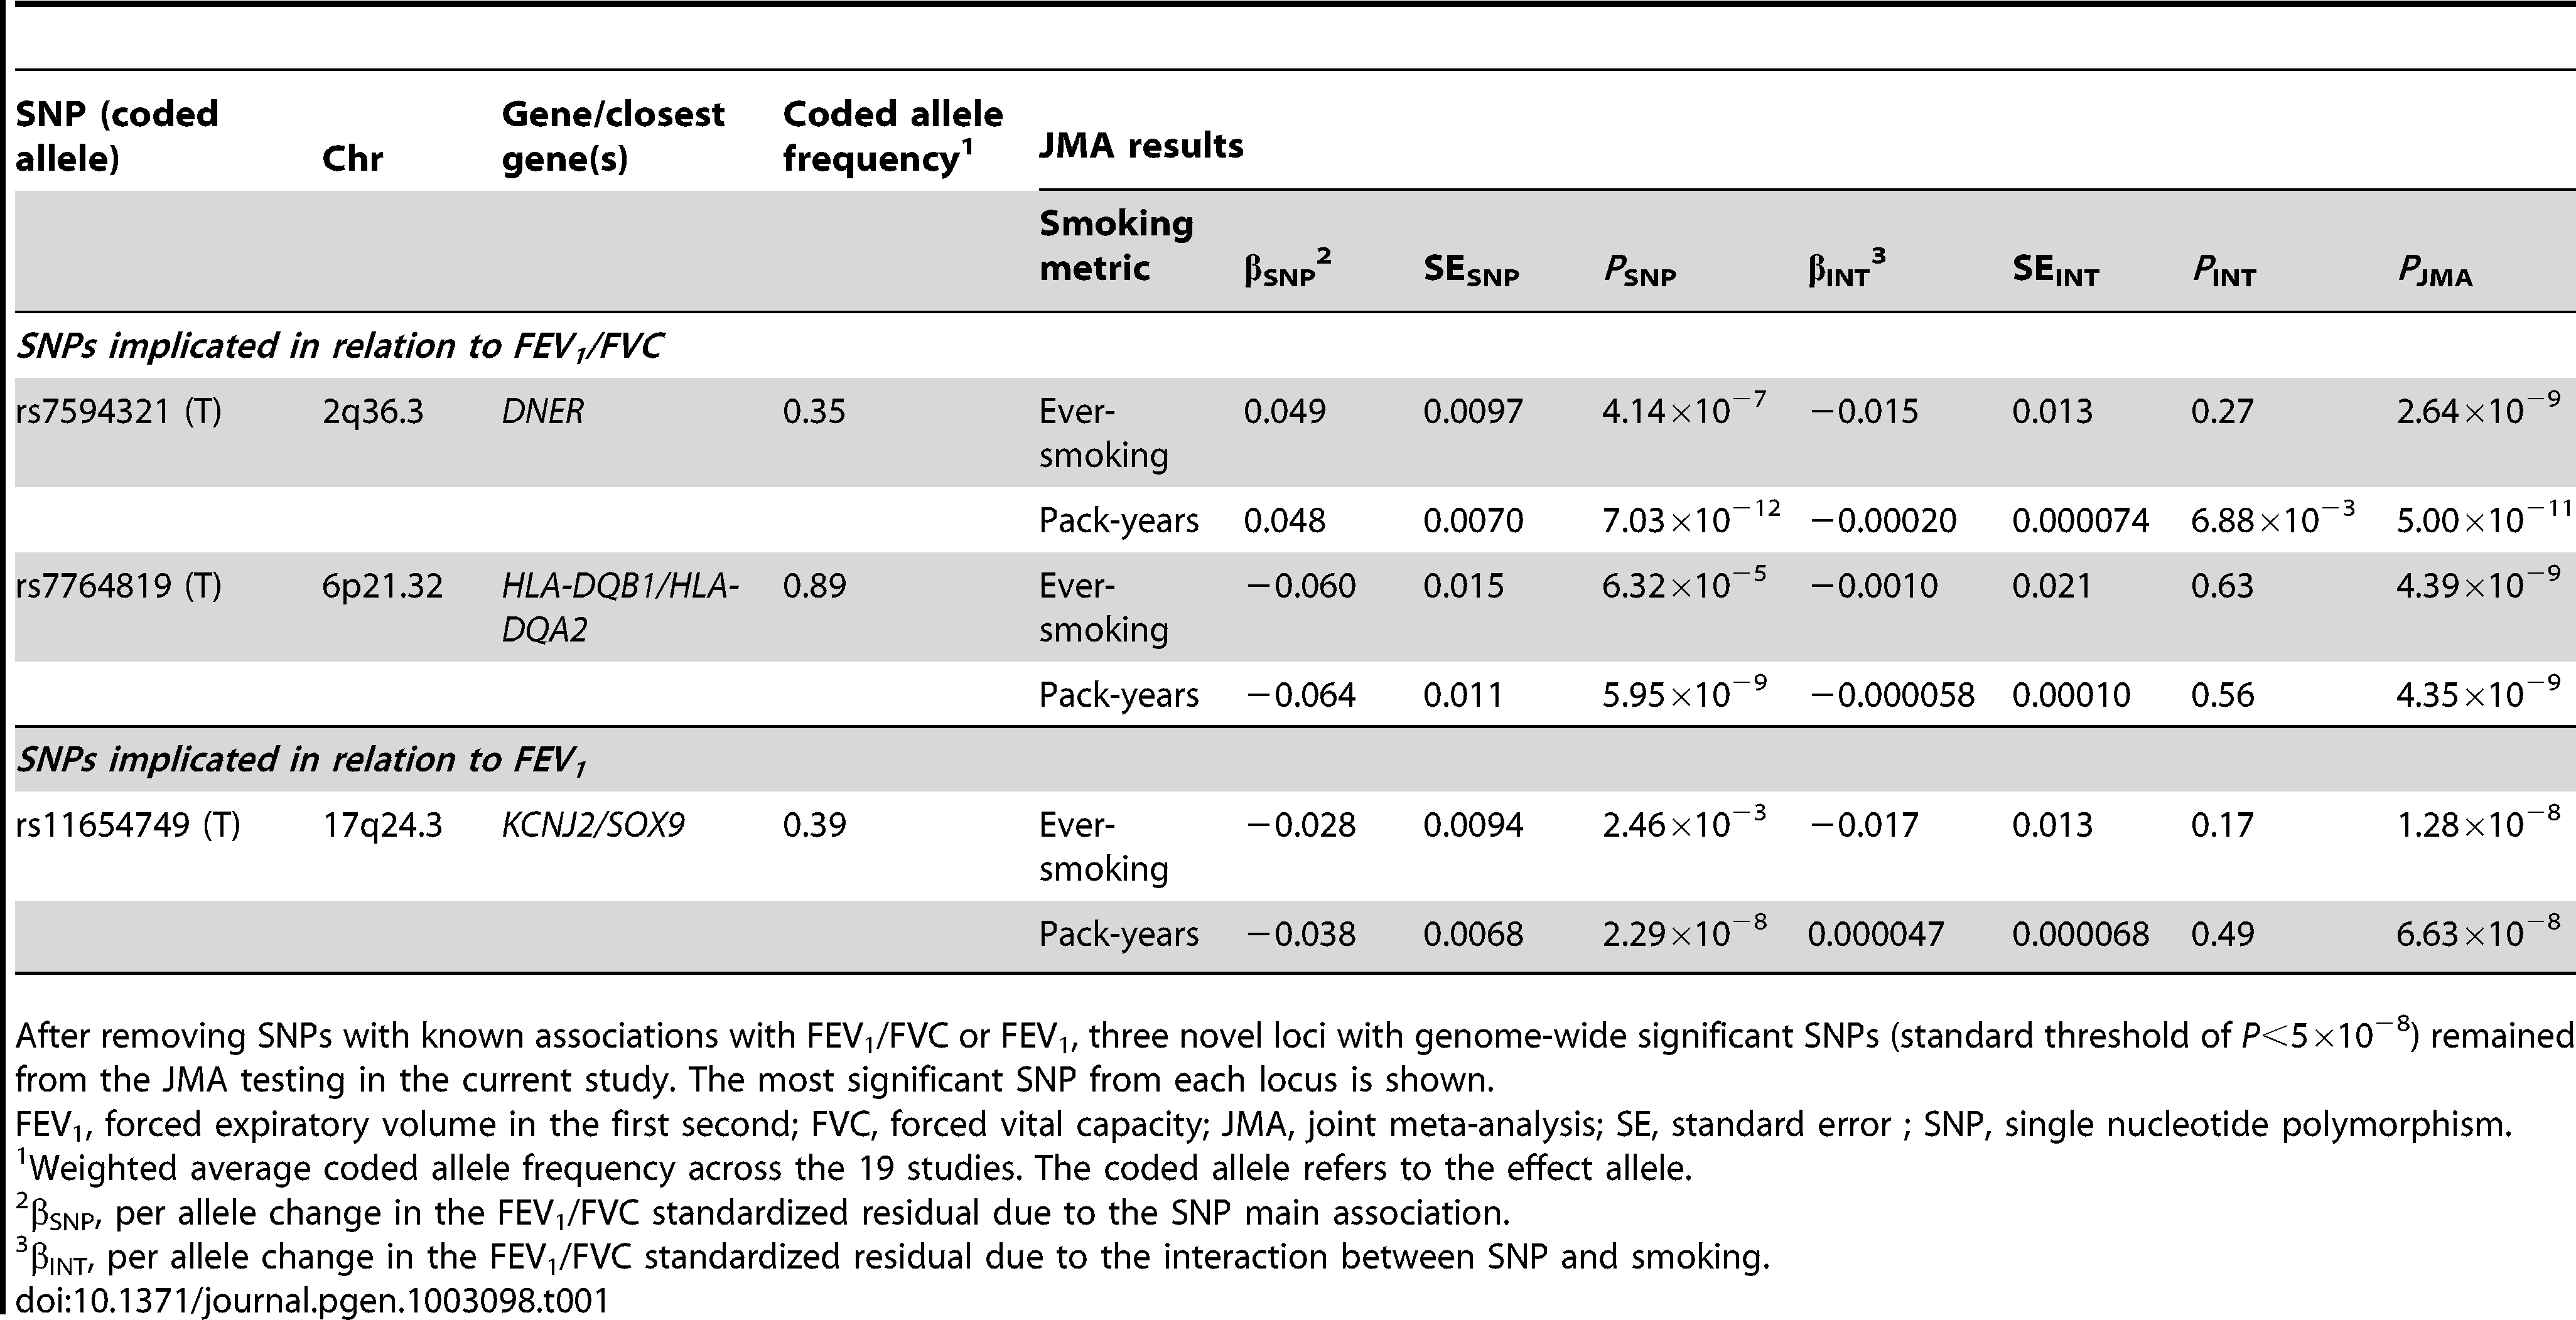 Genome-wide significant SNPs from the joint meta-analysis (JMA) of SNP and SNP-by-smoking (ever-smoking or pack-years) interaction in relation to pulmonary function.